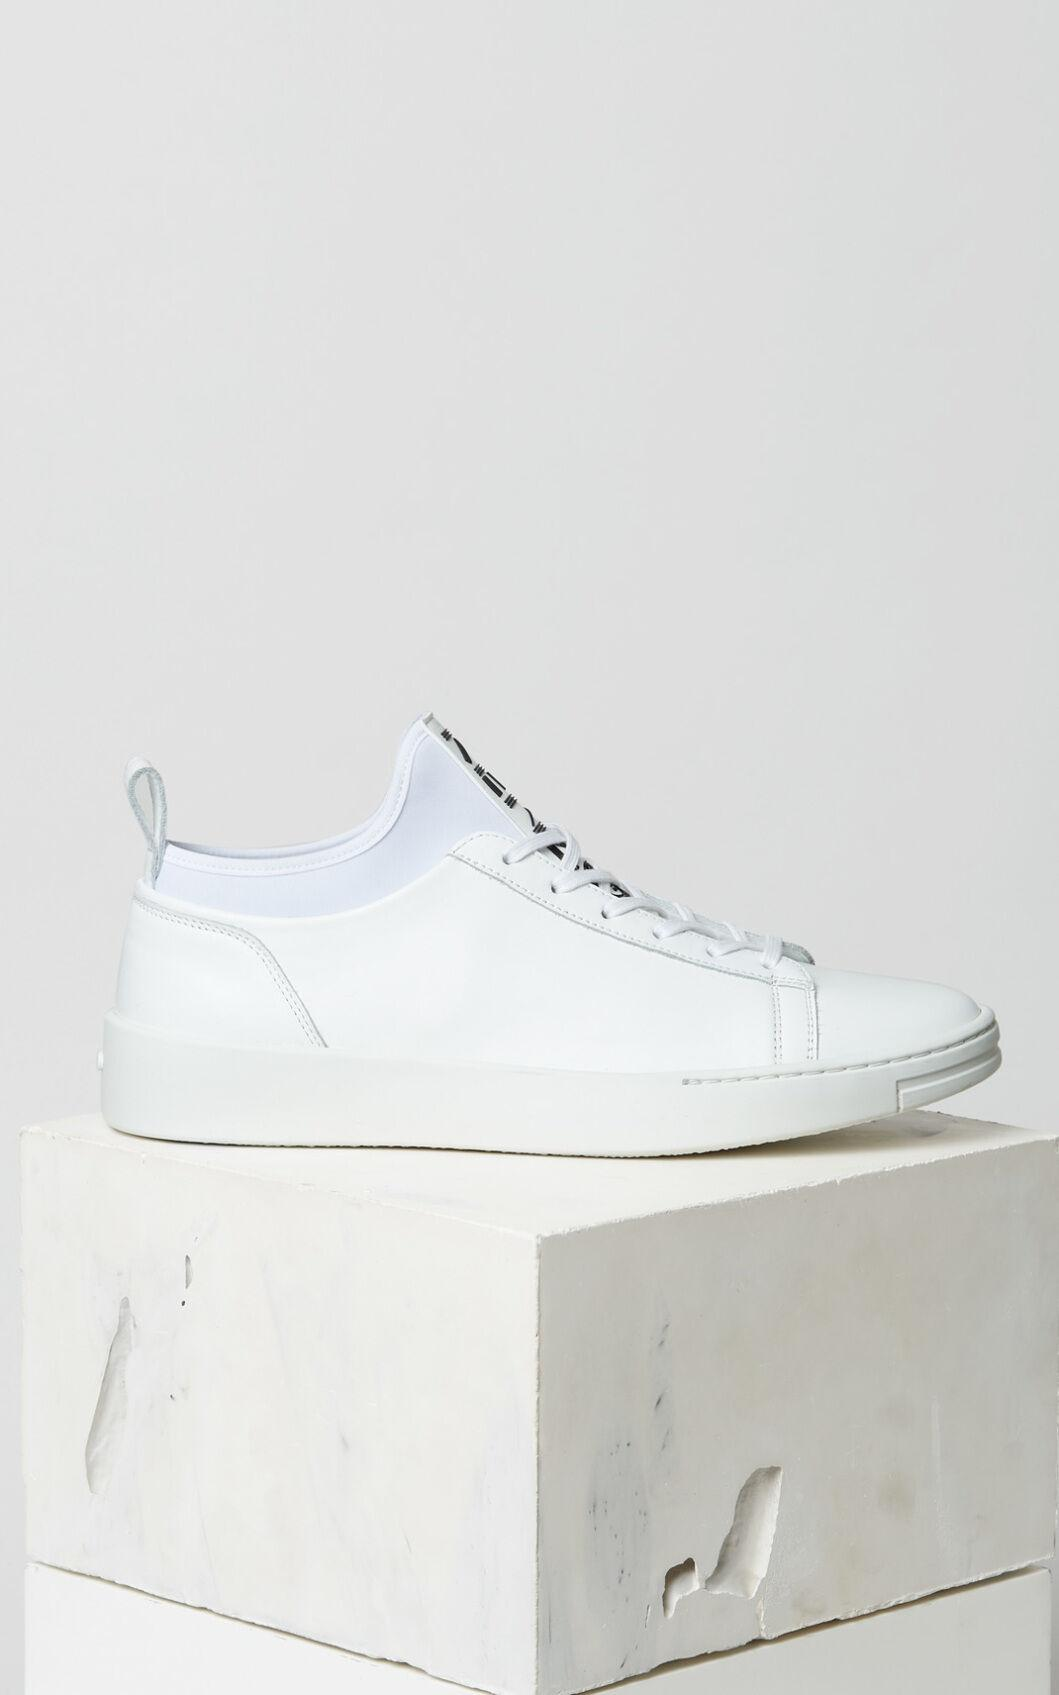 KENZO Leather K-city Sneakers in White